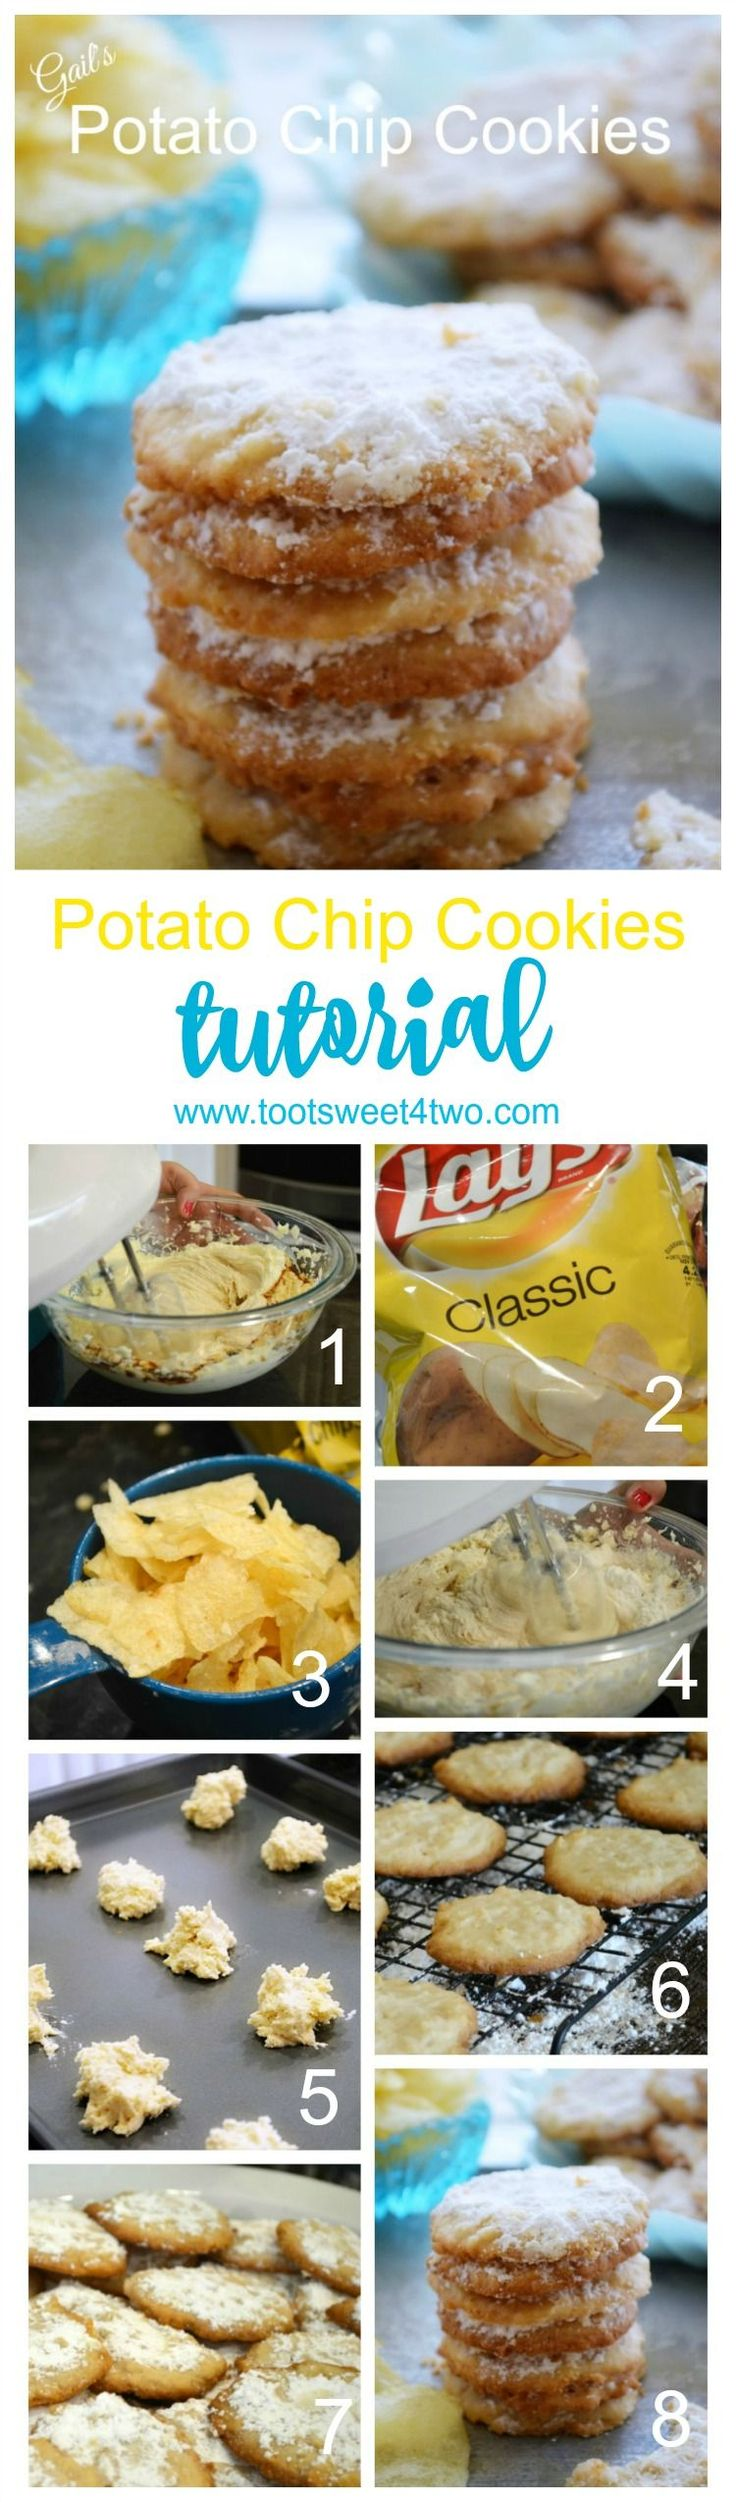 One of the best cookie recipes ever, Potato Chip Cookies are the perfect blend of sweet and salty. Made with Lays potato chips, these easy homemade cookies are sweet, buttery and delicious with just the right amount of salt. If you think your family already has a favorite recipe for cookies, think again! Addicting (in a good way), this potato chip cookie recipe will fast become a family favorite. Delicious any time of year, these cookies are perfect Christmas cookies to share - just be sure…